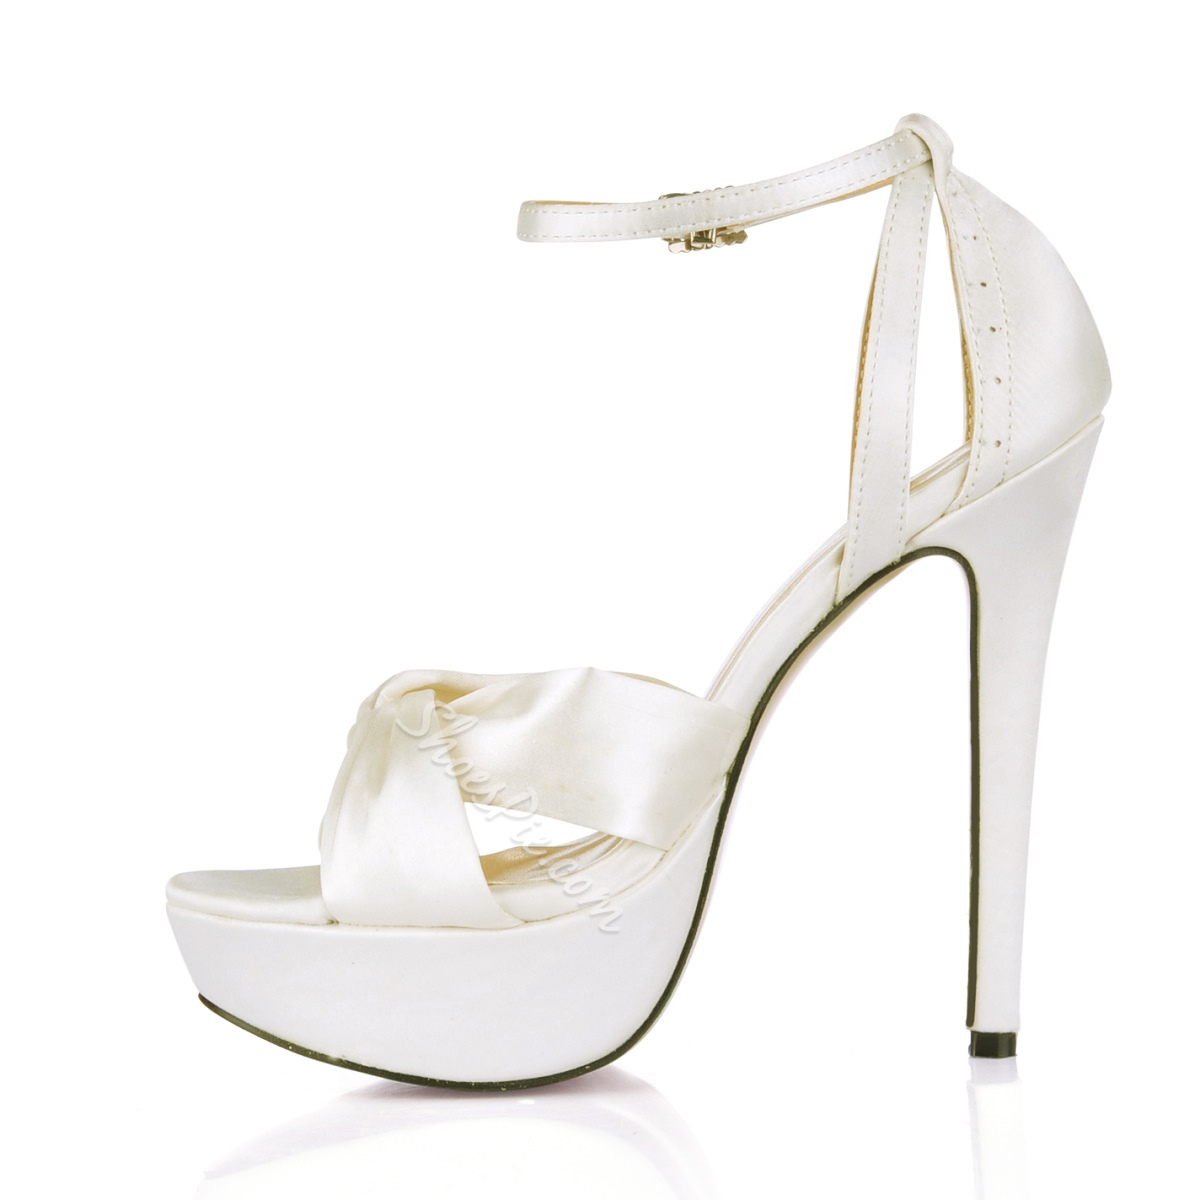 Best White Satin Upper Stiletto Heels Dress Sandals